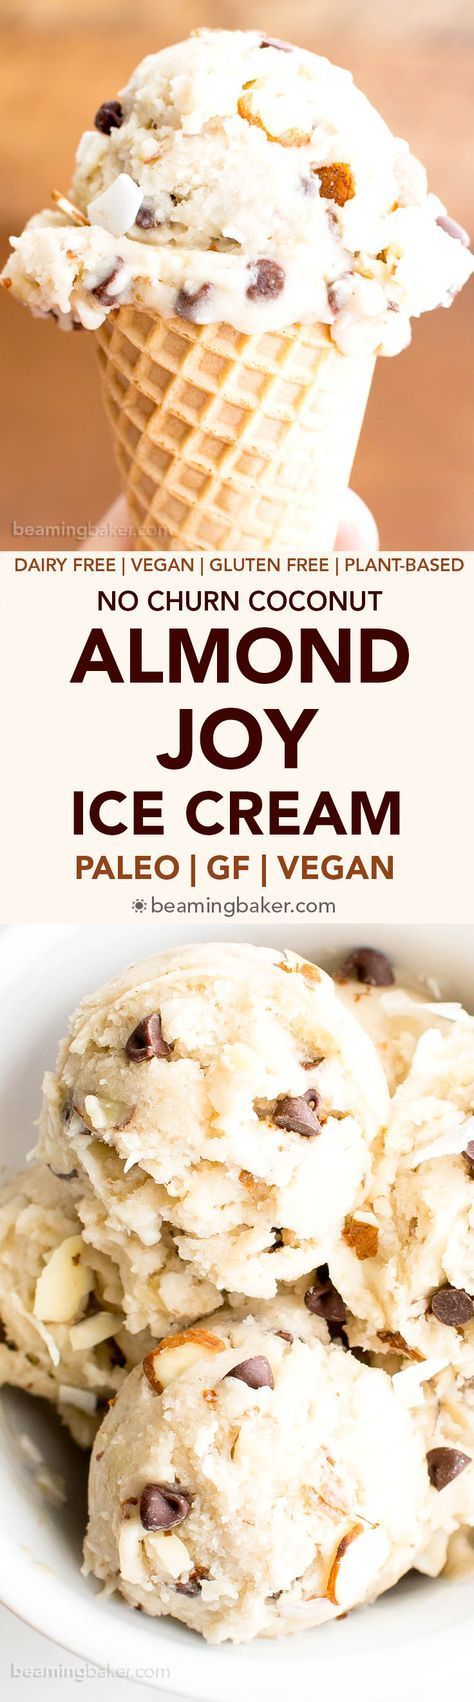 Paleo Vegan Almond Joy Ice Cream (V, GF): a 7 ingredient recipe for deliciously creamy, no churn ice cream bursting with coconut, chocolate and almonds. #Vegan #Paleo #DairyFree #GlutenFree